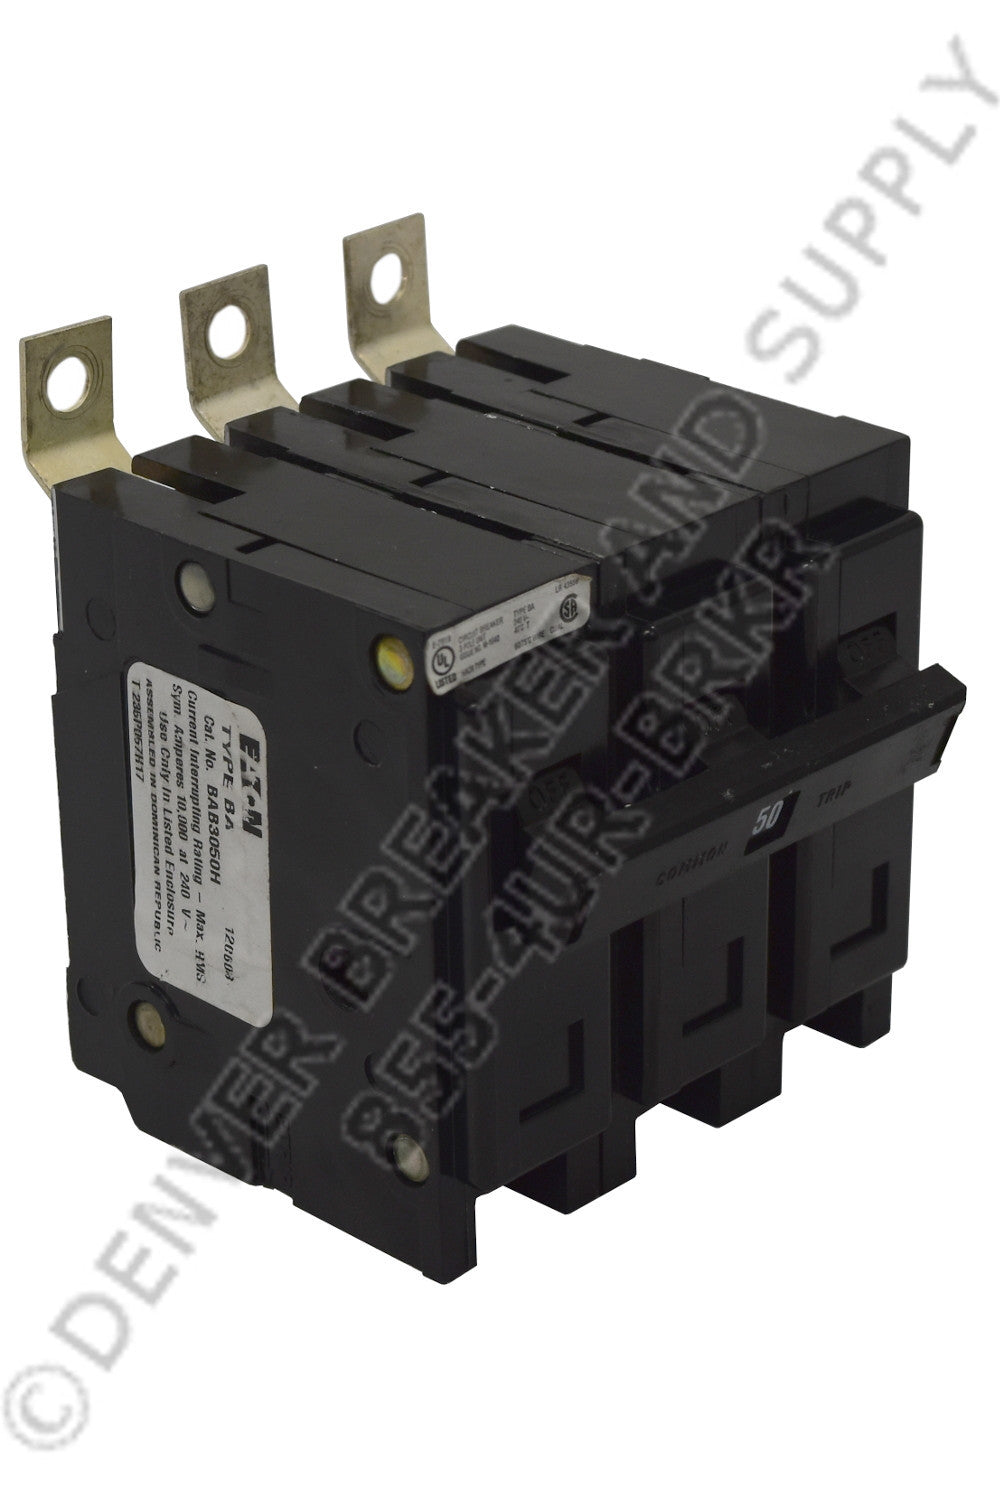 Cutler Hammer BAB3060 Circuit Breakers